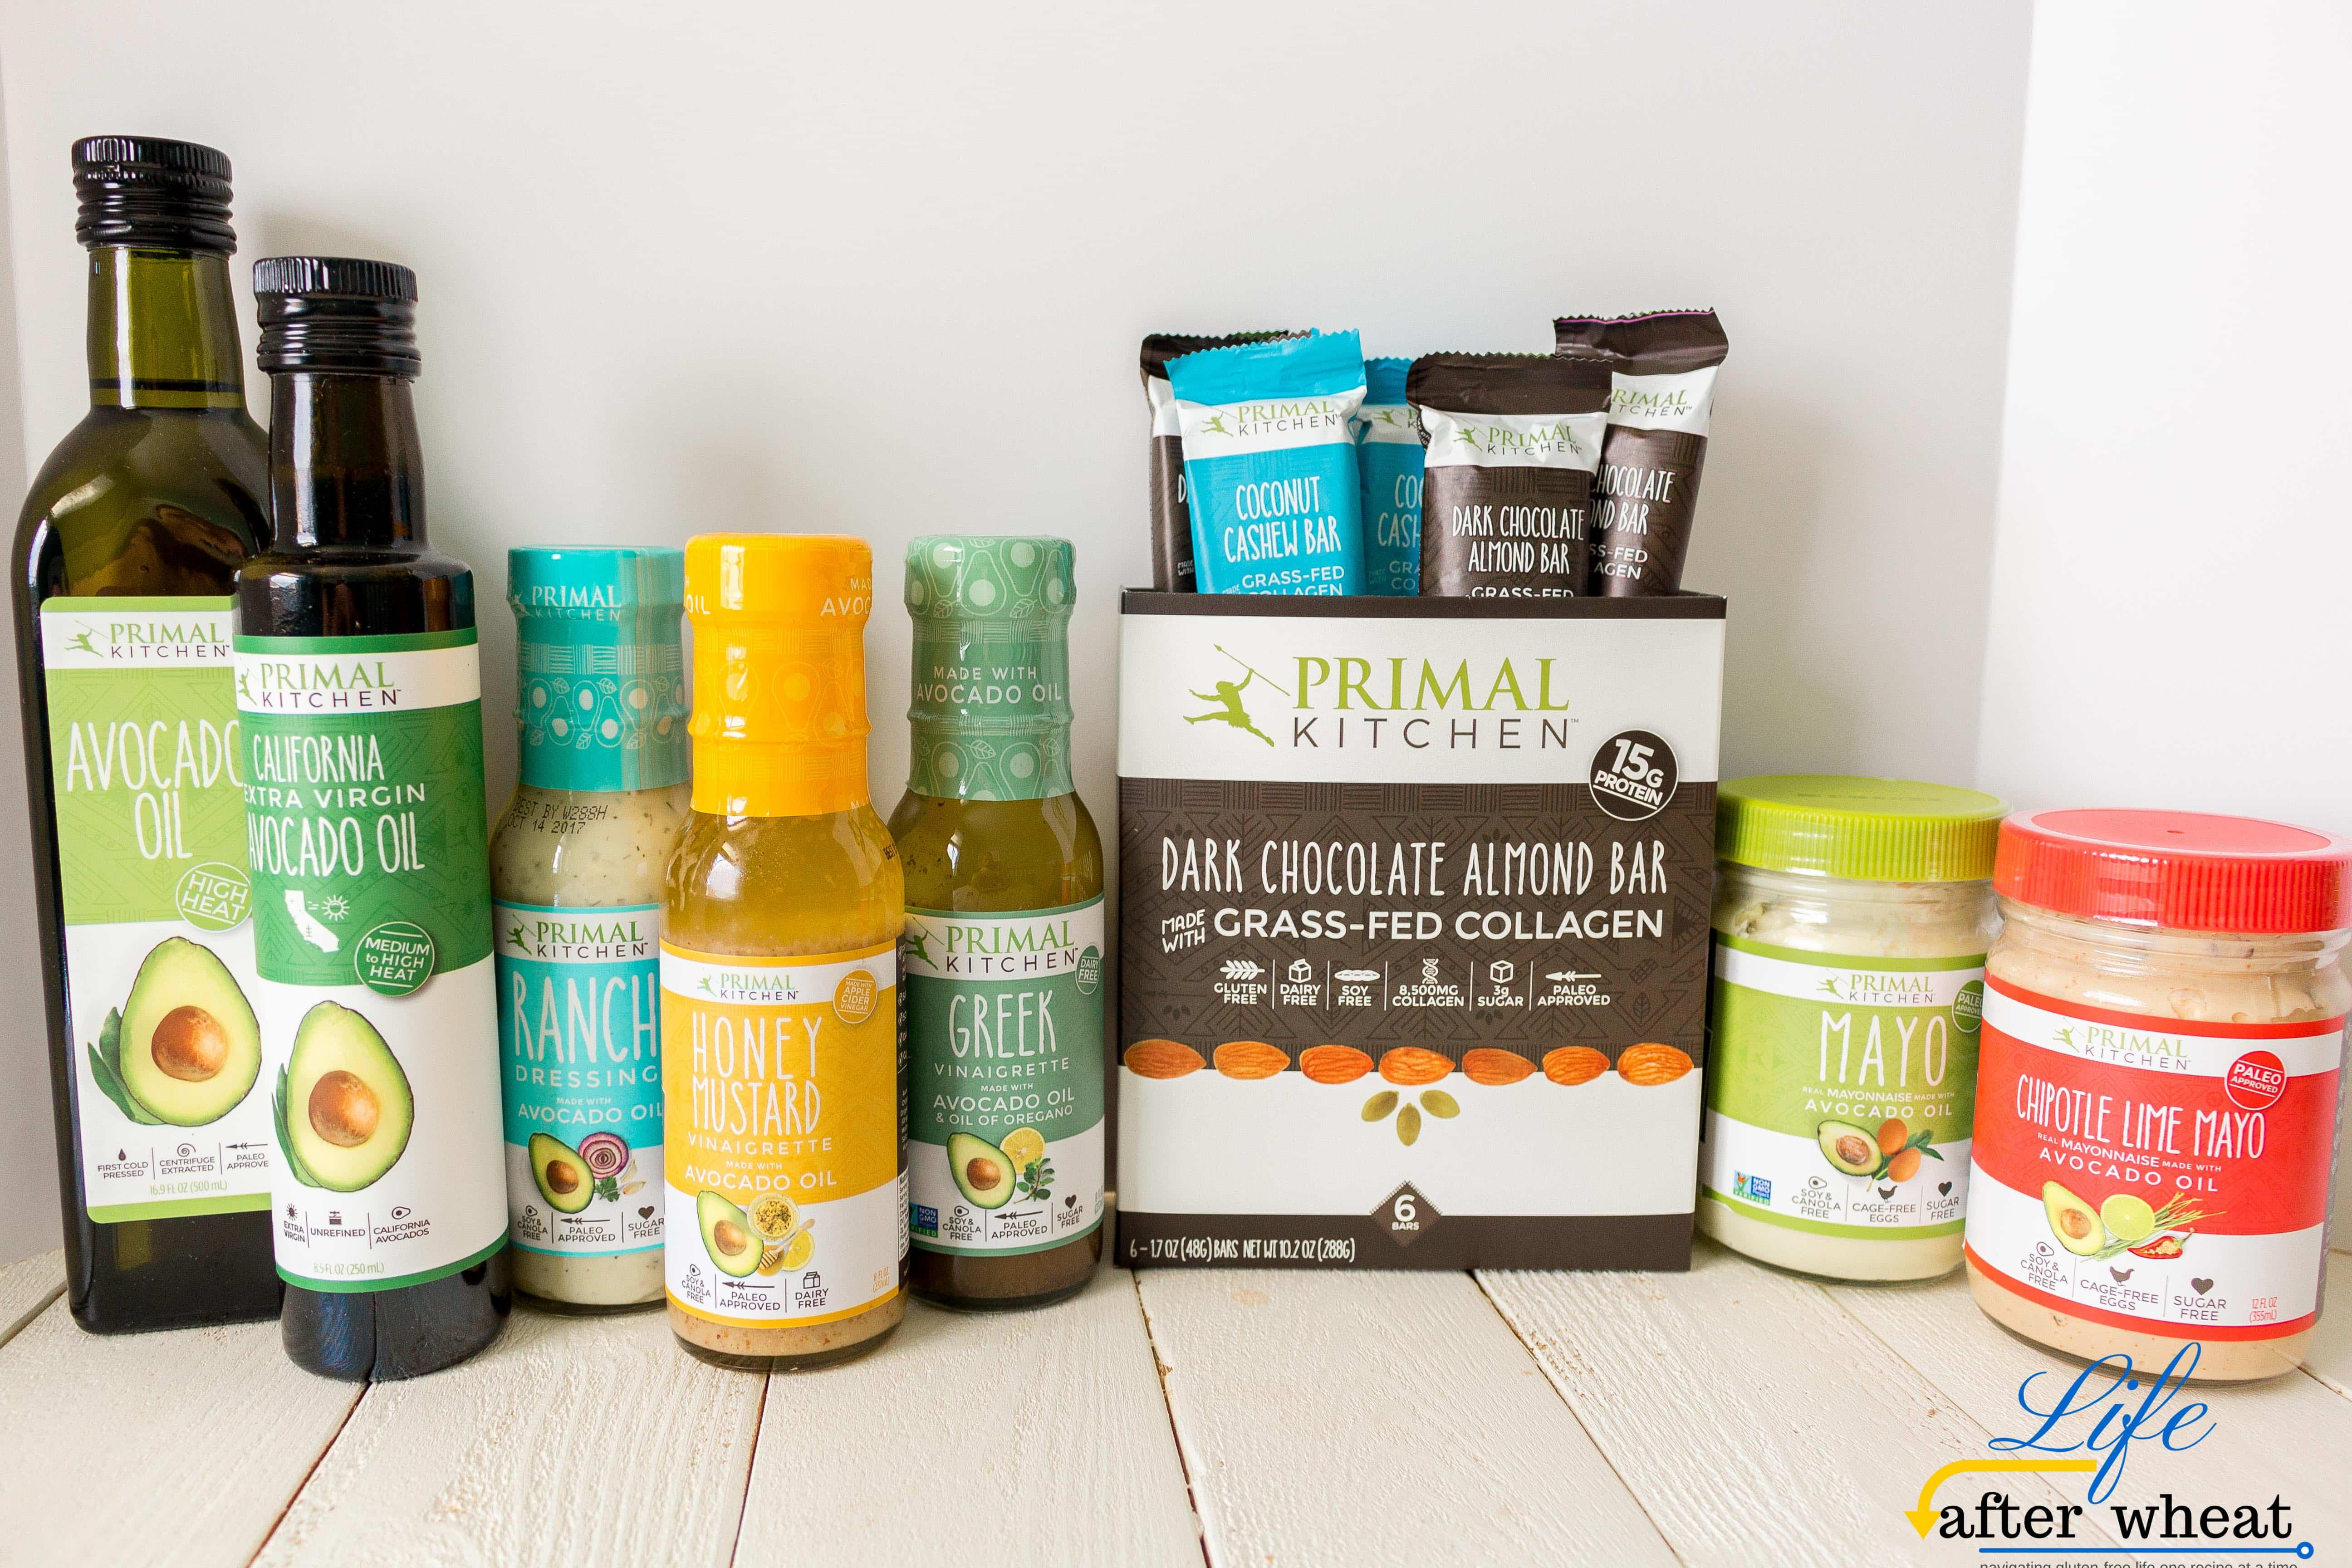 Primal Kitchen Dressing primal kitchen review and giveaway - life after wheat